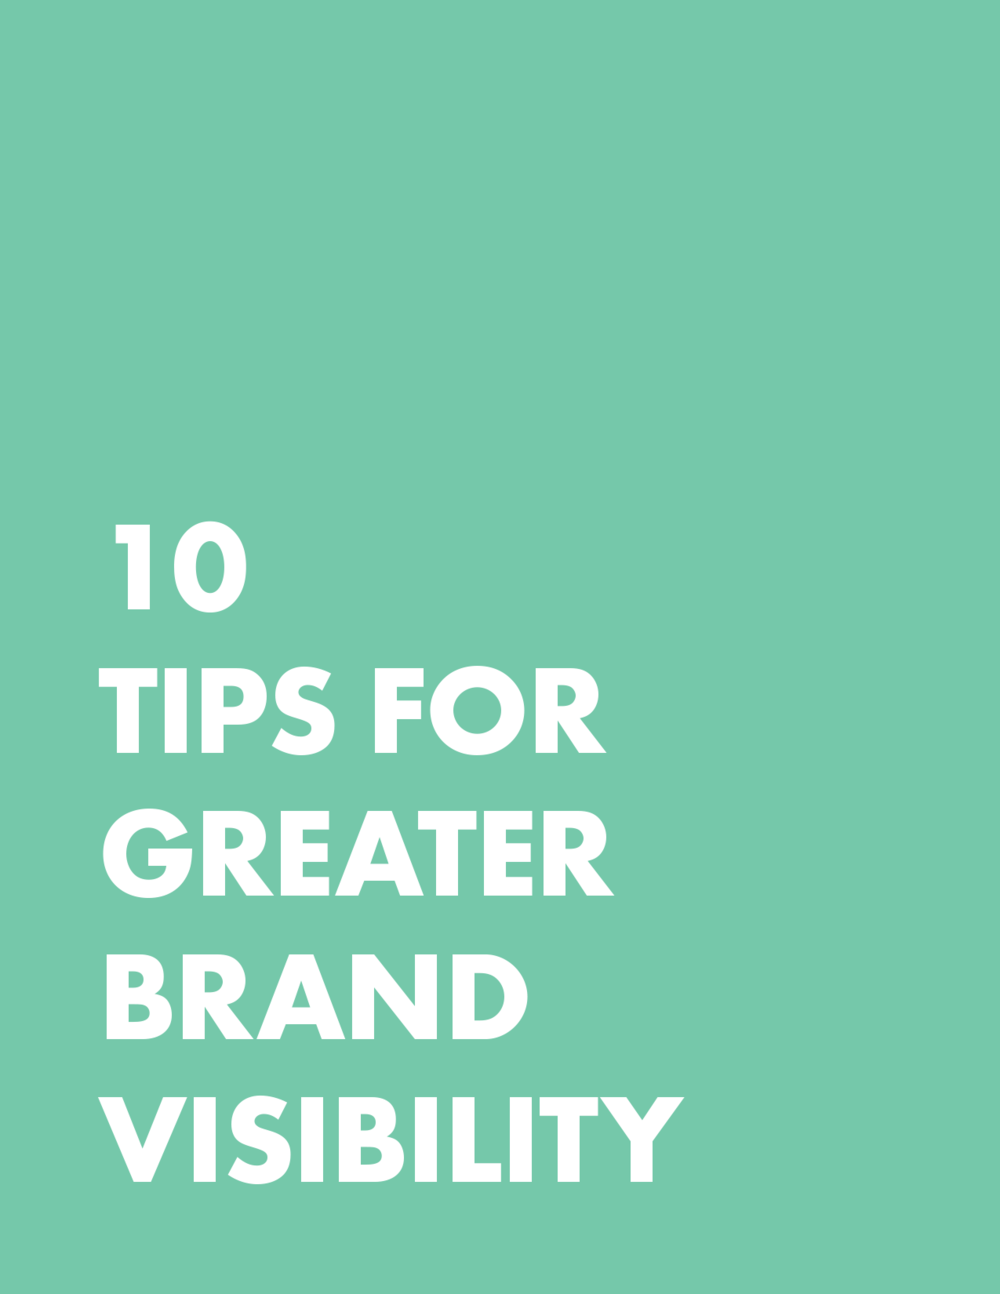 10-Tips-For-Greater-Brand-Visibility-MB-Creative-cover.png